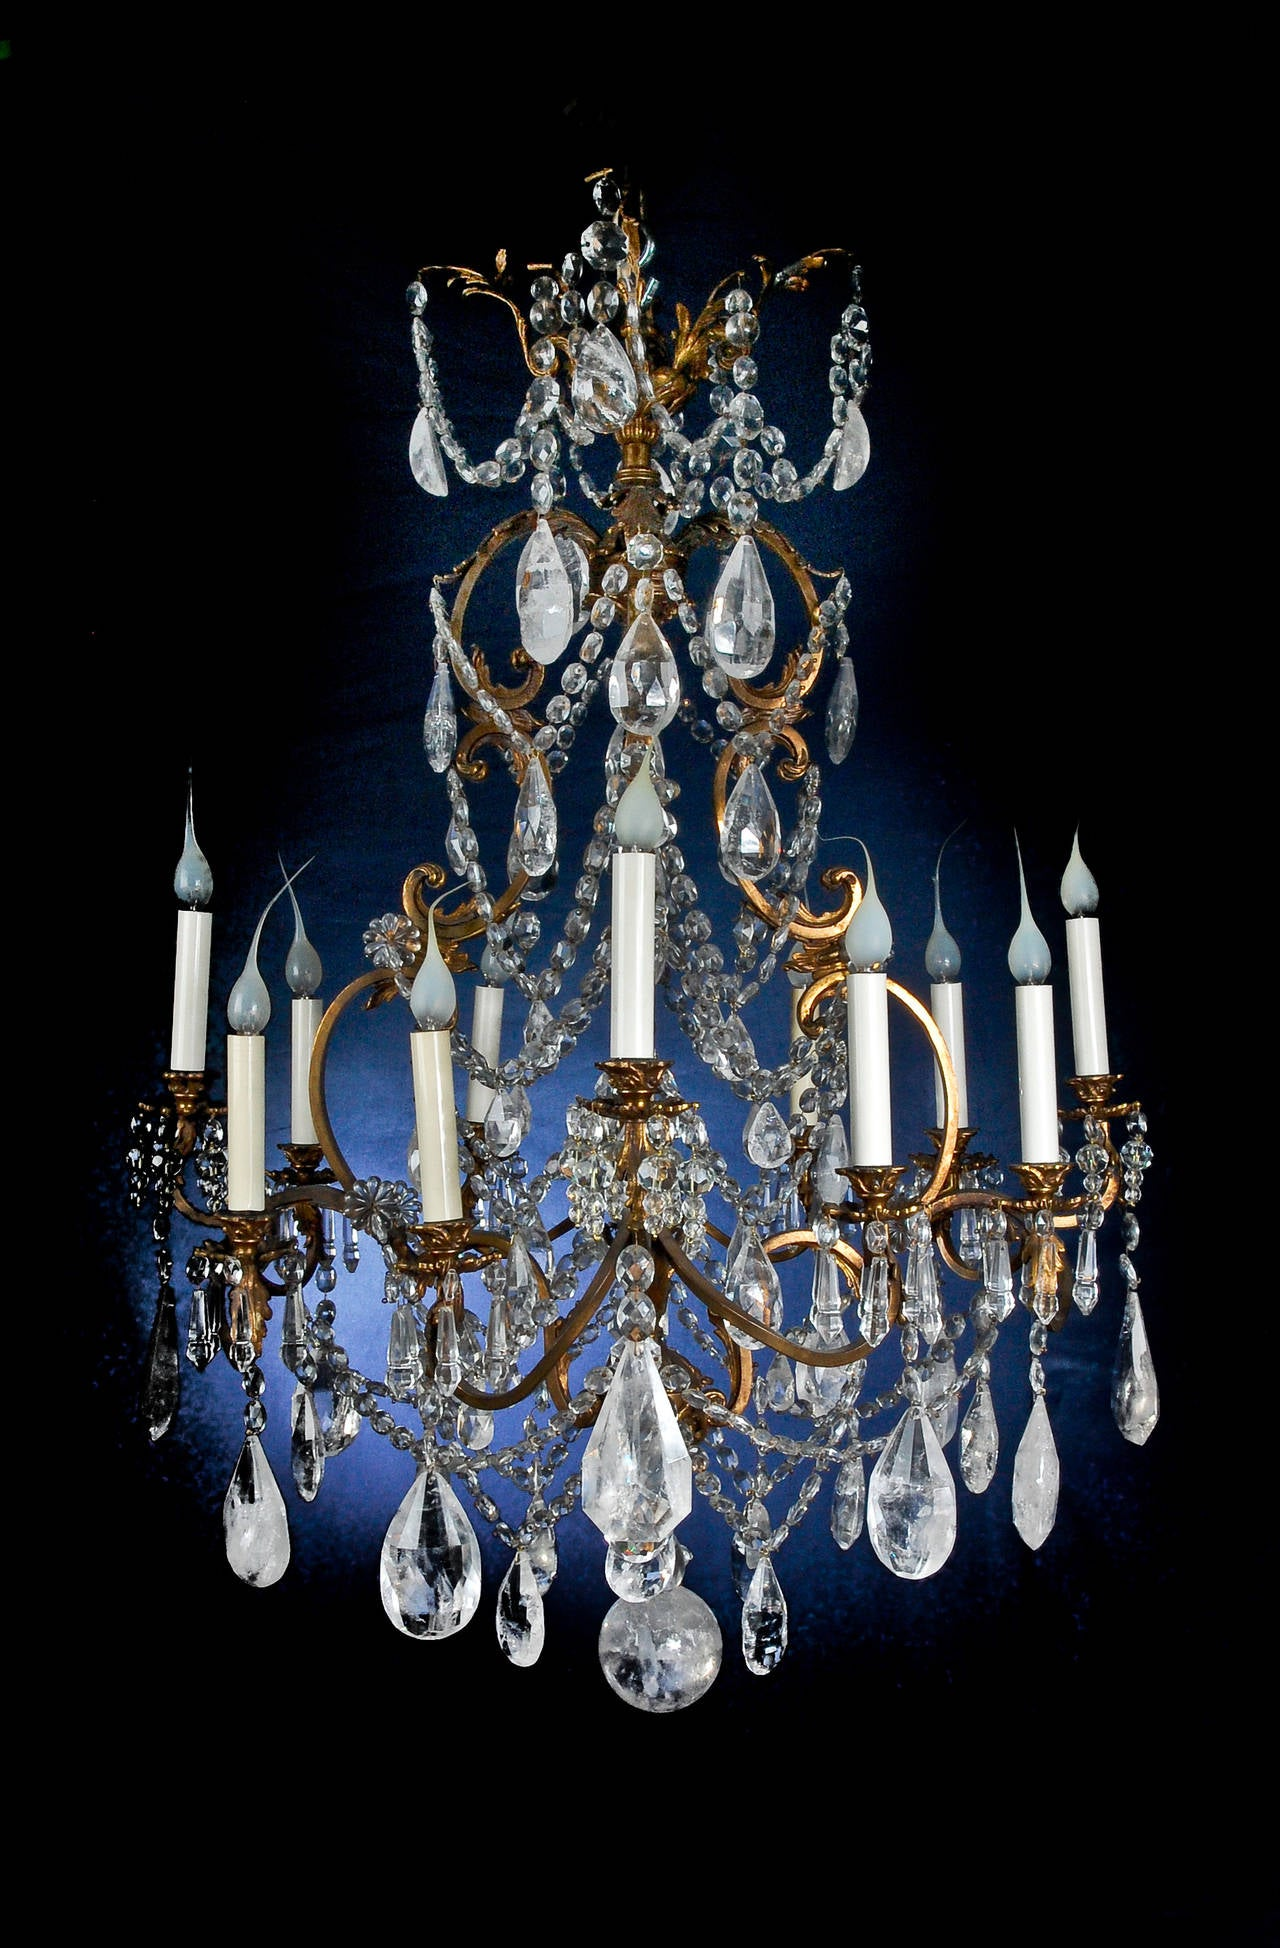 Fine antique french louis xv style gilt bronze and cut rock fine antique french louis xv style gilt bronze and cut rock crystal chandelier in good condition aloadofball Image collections